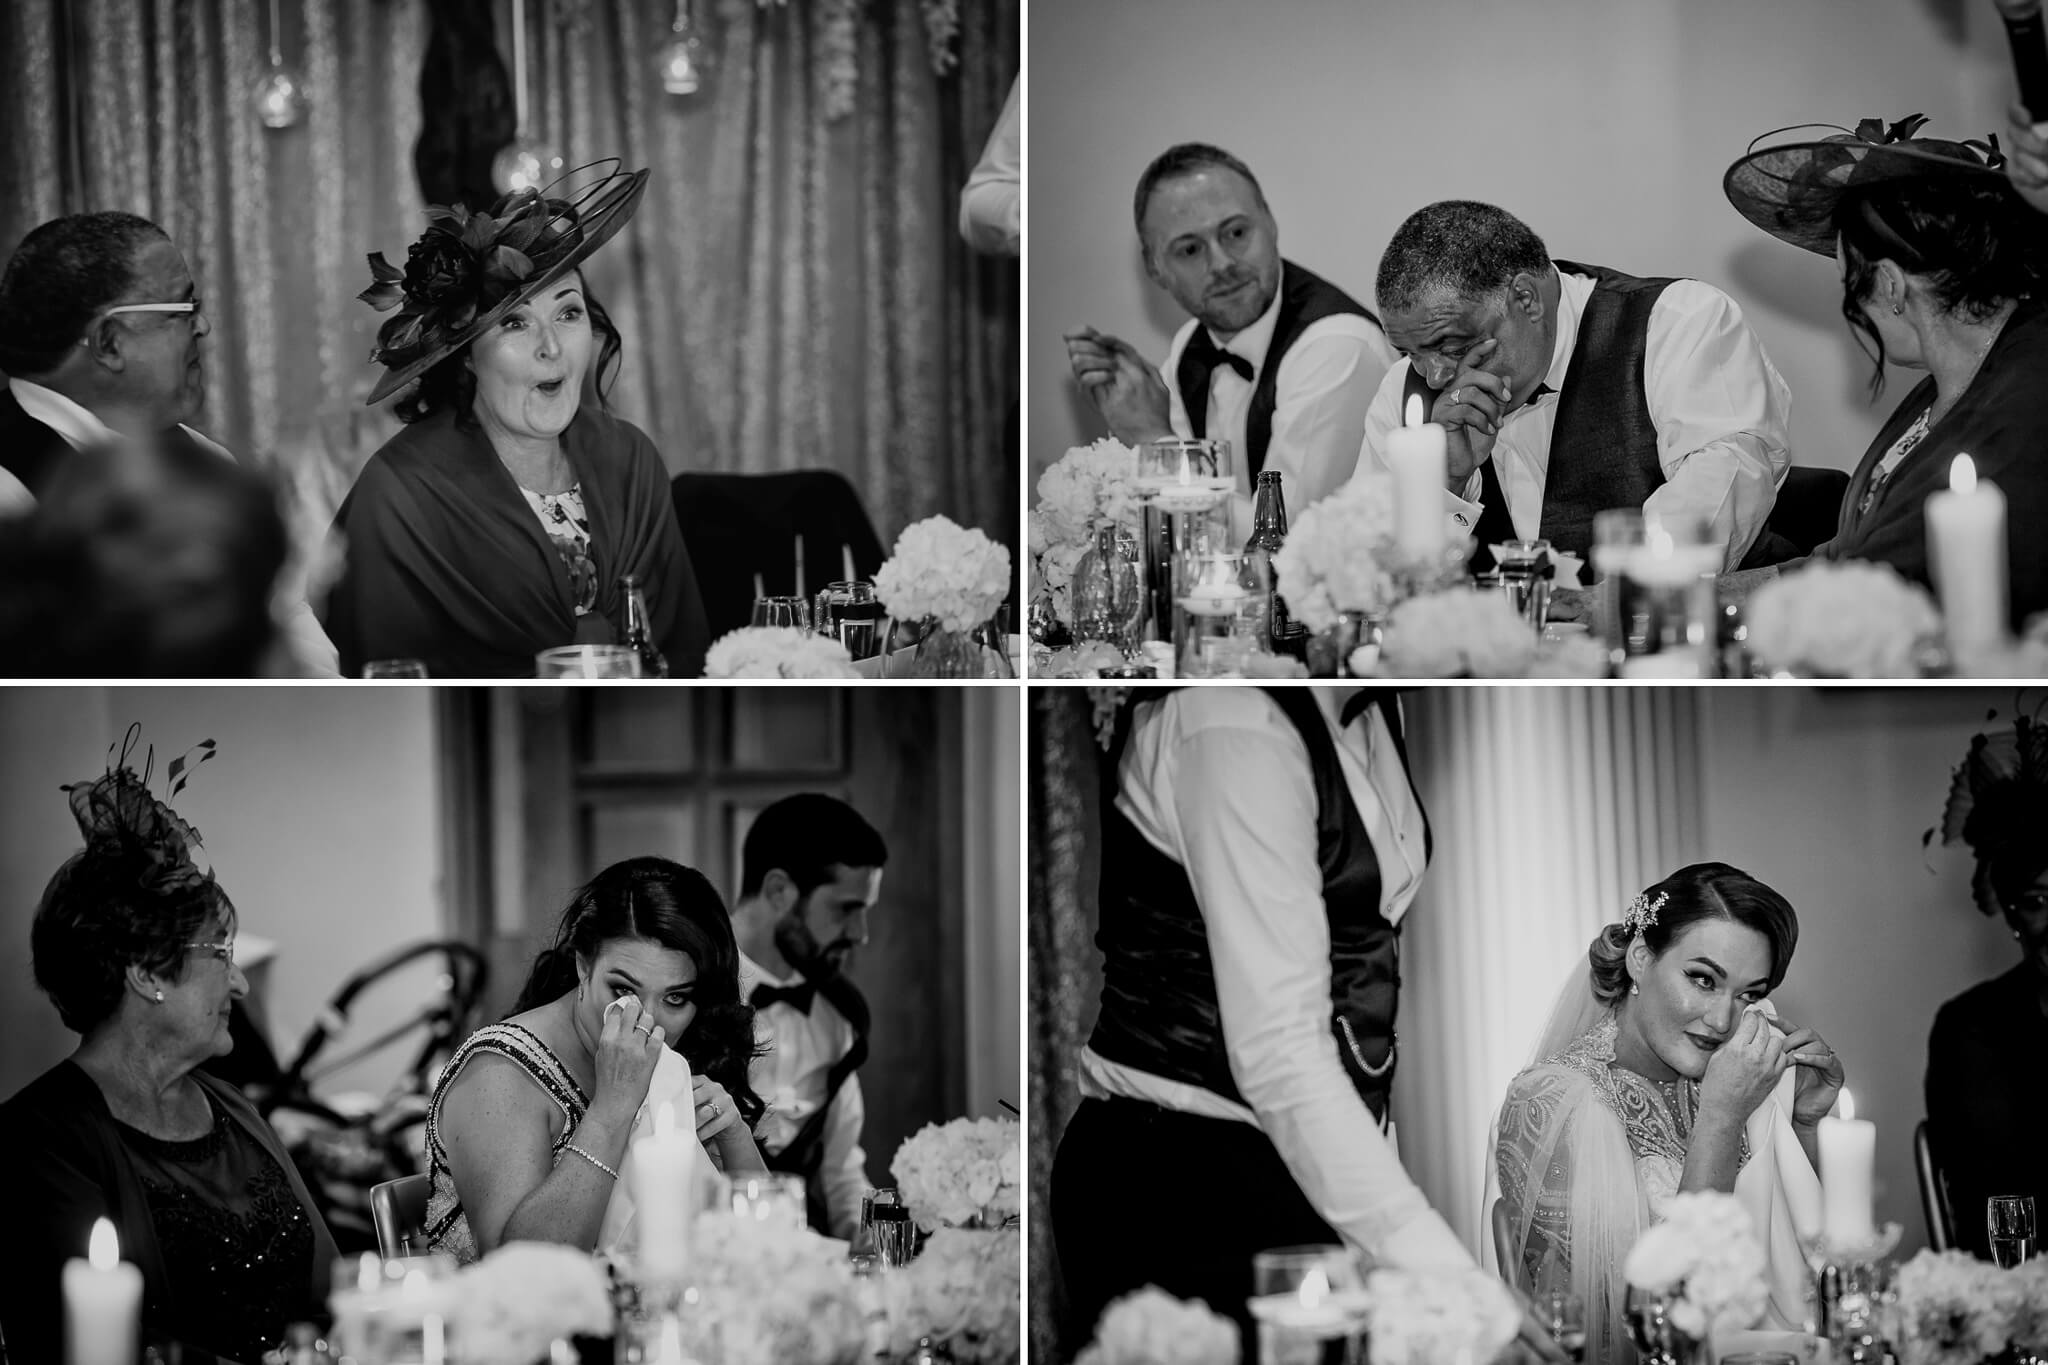 bolton-school-wedding-photographer-stanbury-photography-032